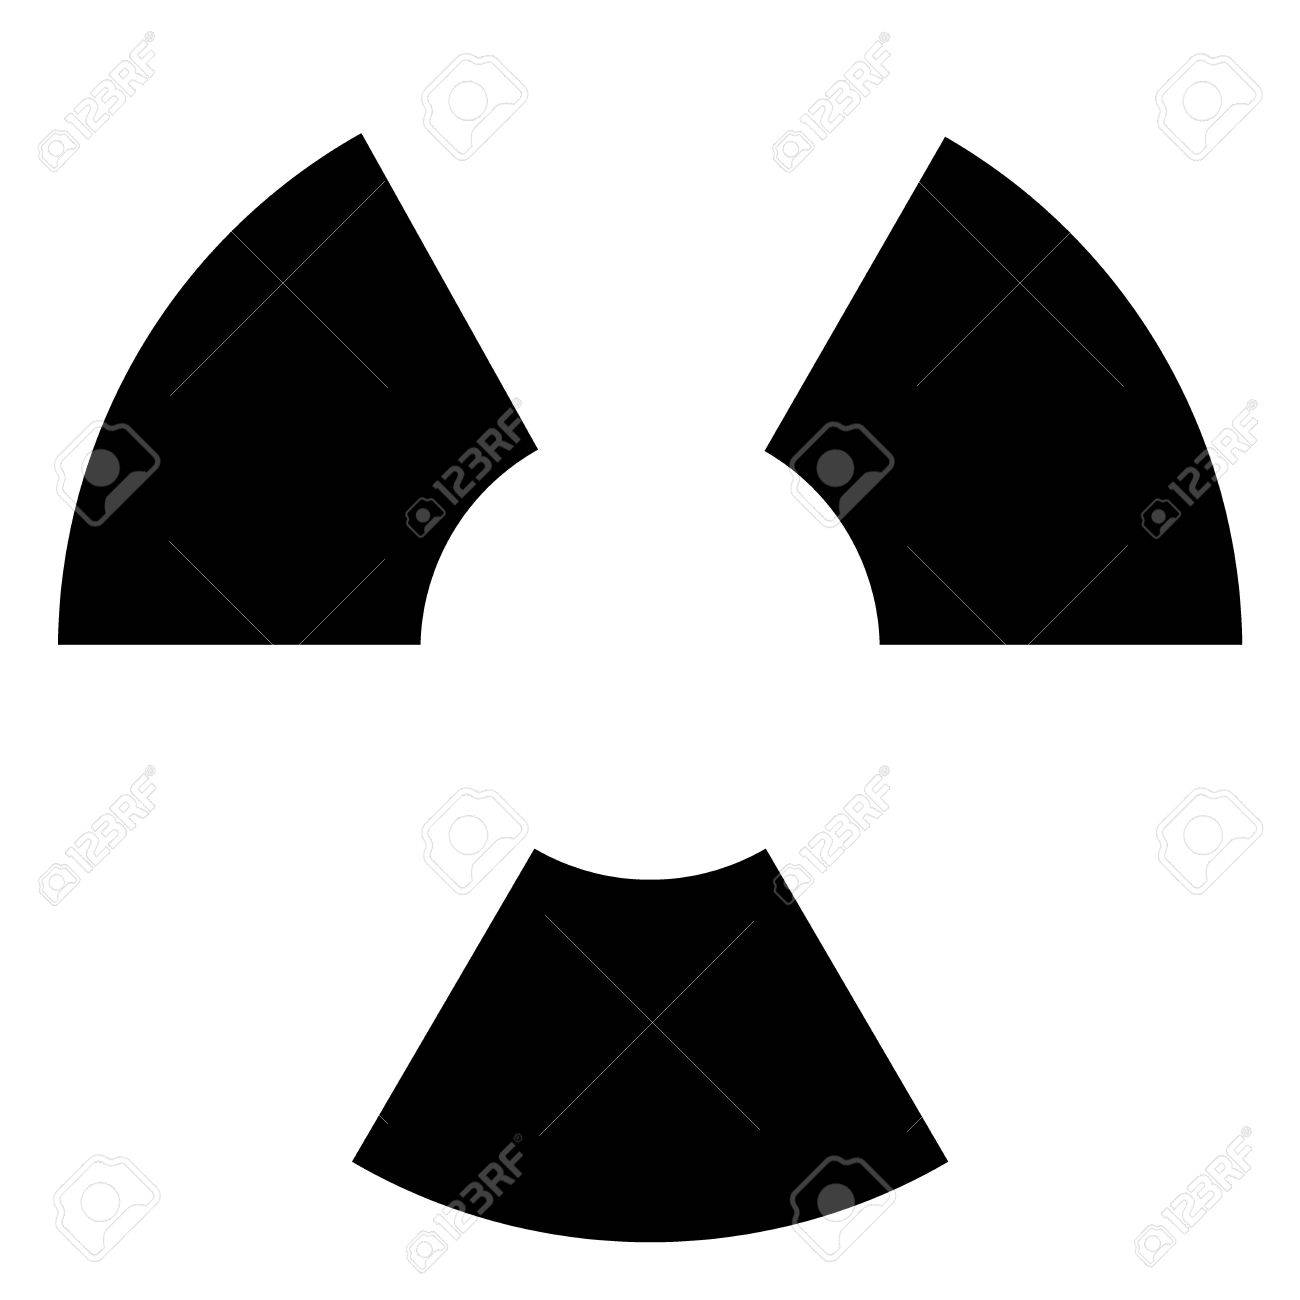 Black and white symbol for nuclear or radioactive stuff stock black and white symbol for nuclear or radioactive stuff stock photo 686845 buycottarizona